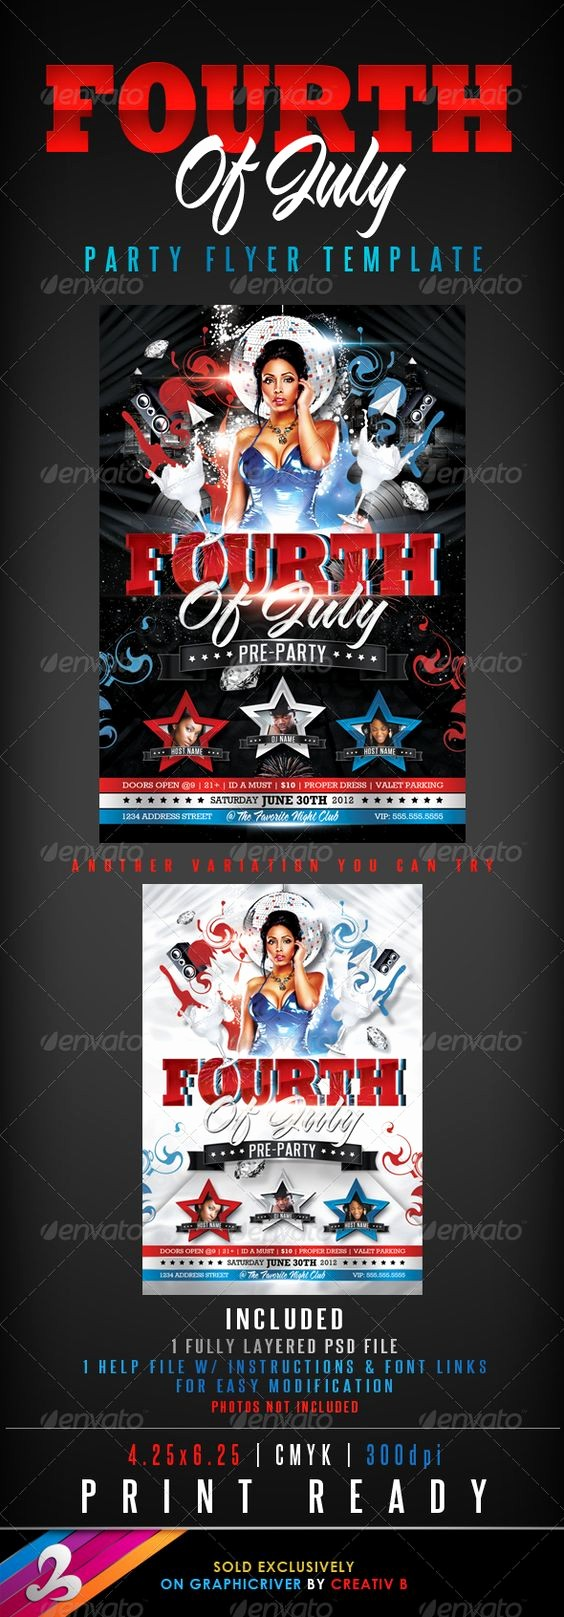 Fourth Of July Invitation Template Awesome La S Day Invitation Templates